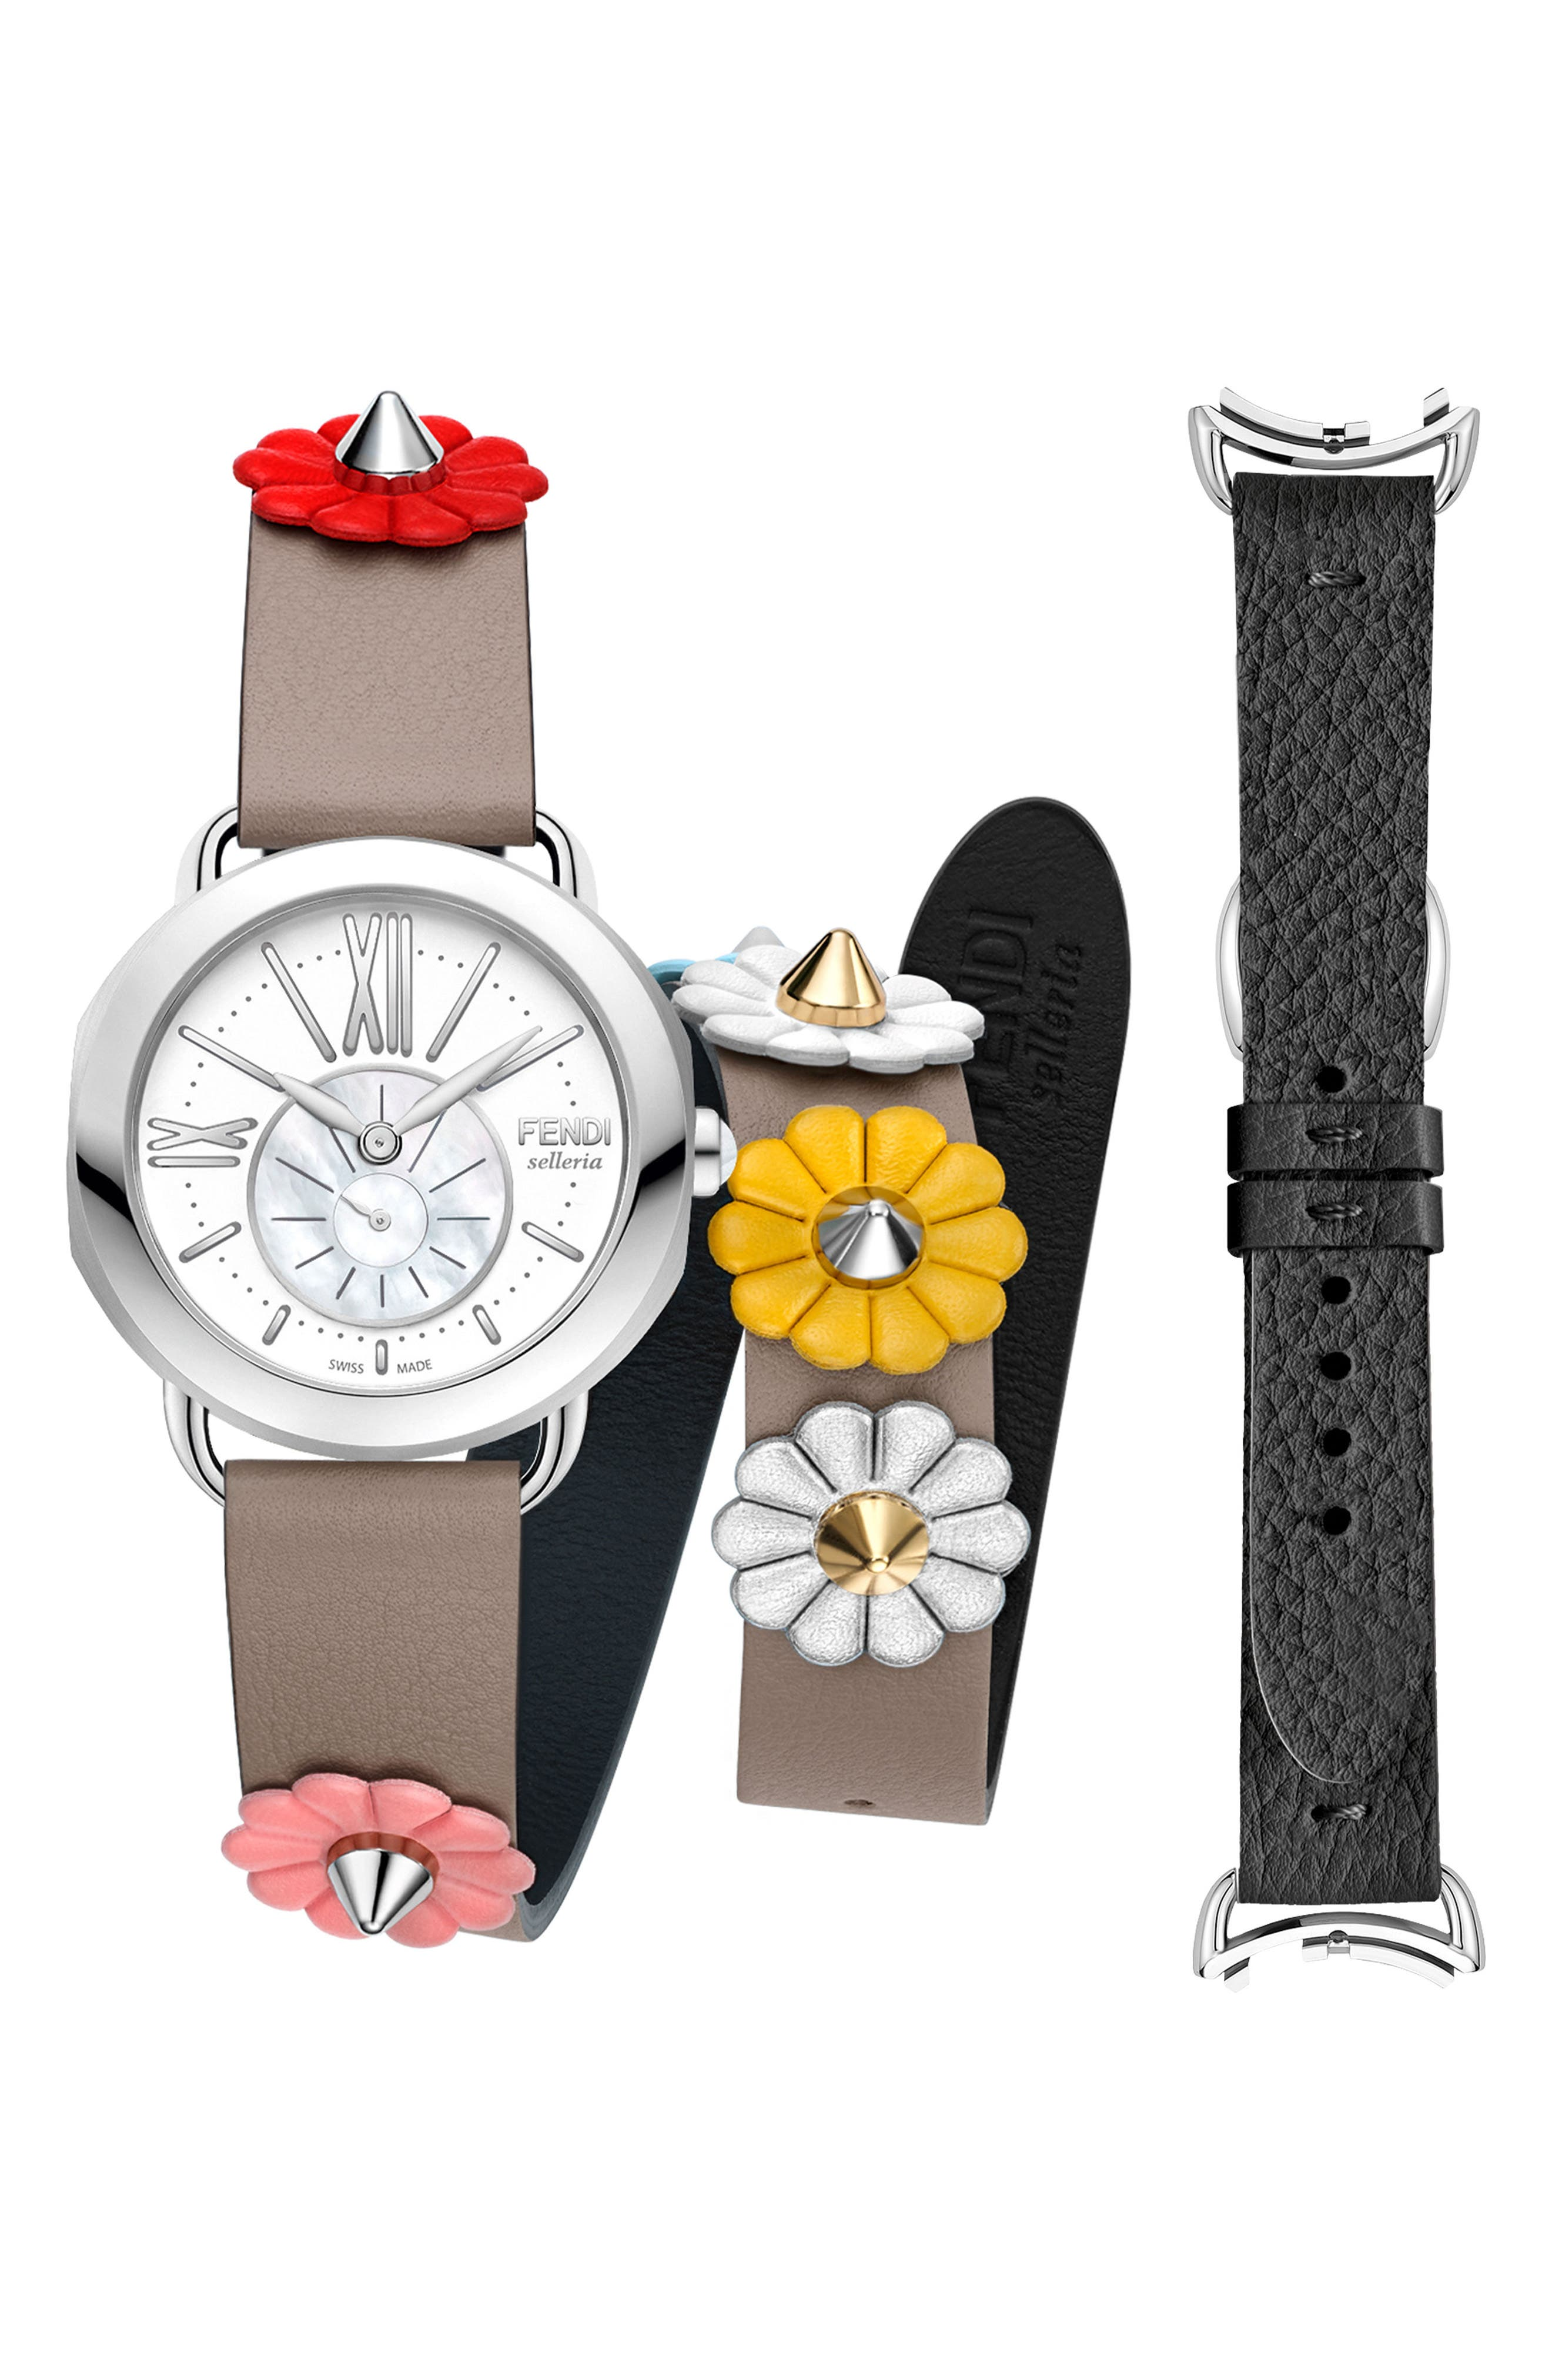 Main Image - Fendi Selleria Leather Strap Watch Set, 36mm